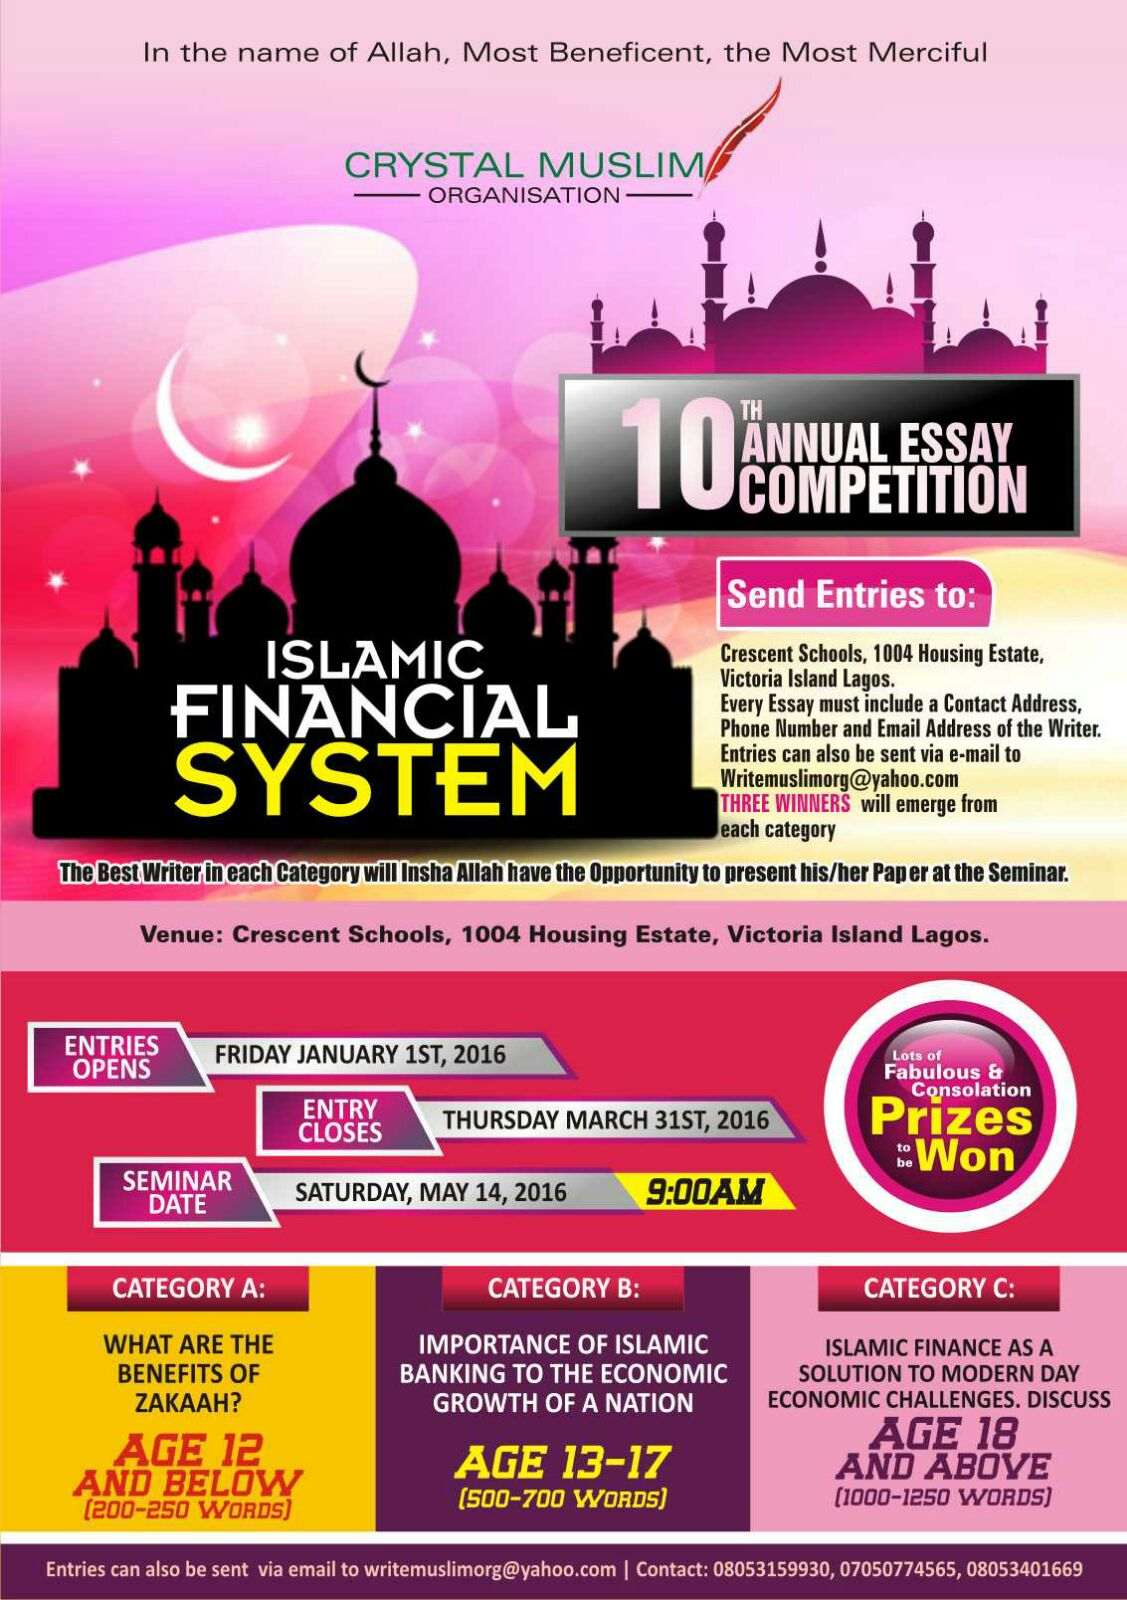 essay on islamic banking islamic banking turns out to be less  islam creed 10th cmo islamic essay competition islamic financial entry opens 1st 2016 and closes 31st